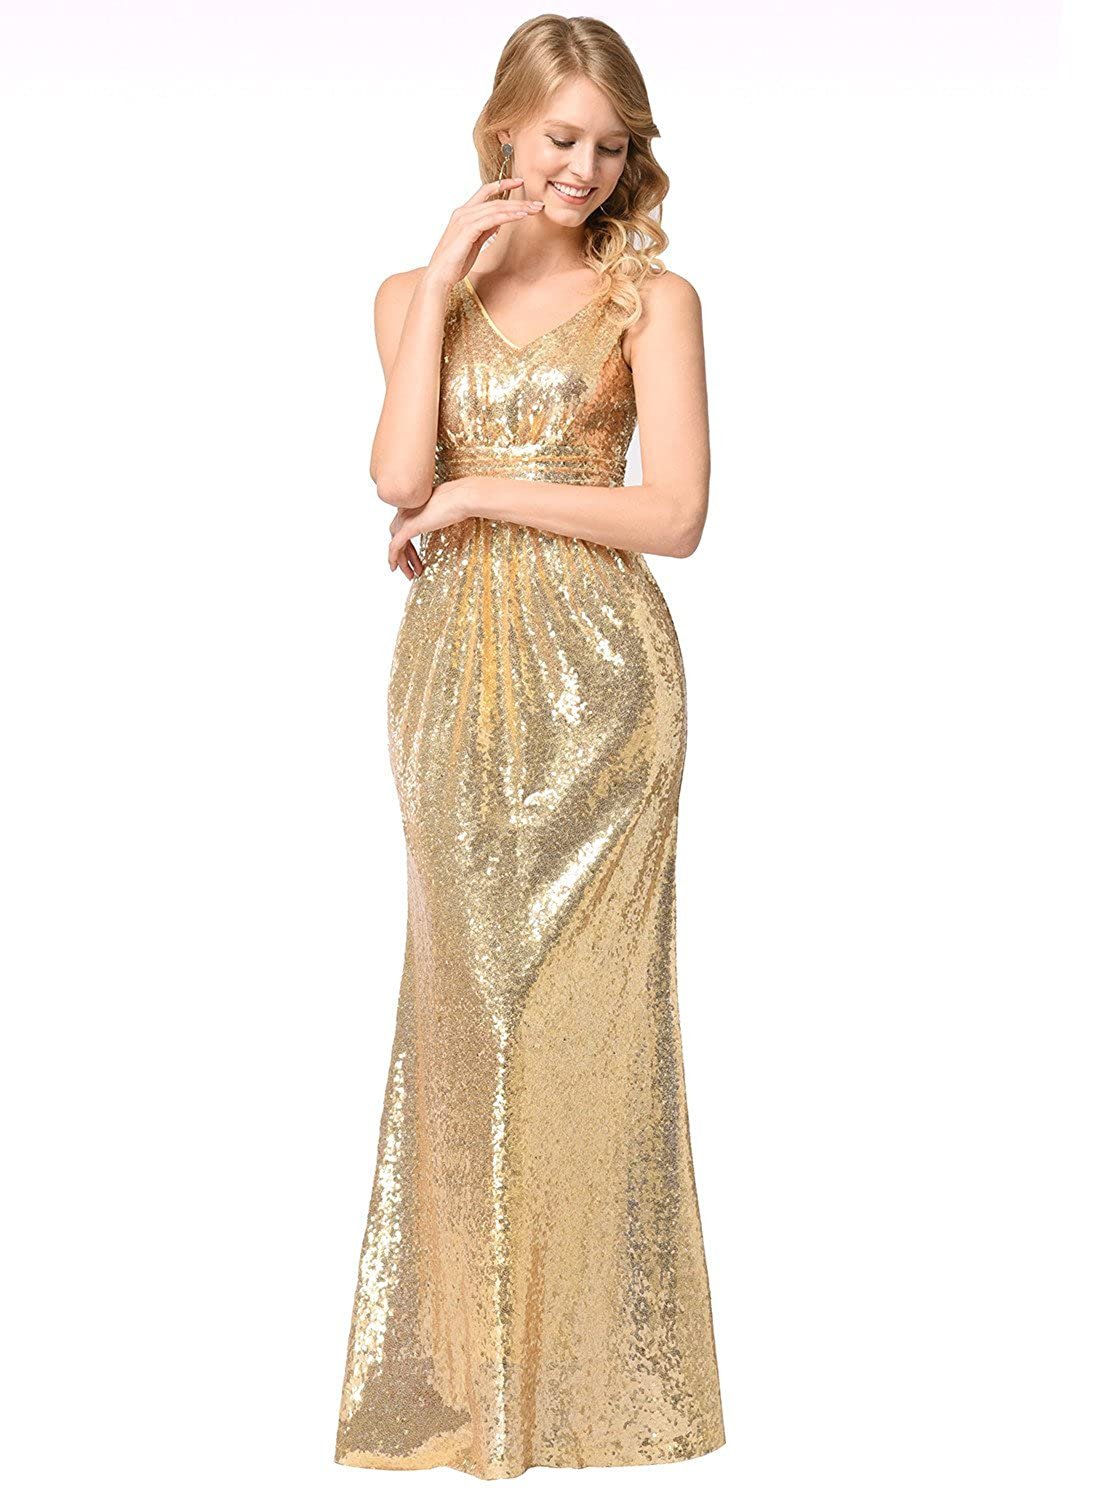 Ruiyige Womens V-Neck Wrap Dress Night Out Gown Party Long Sequins Dresses at Amazon Womens Clothing store: